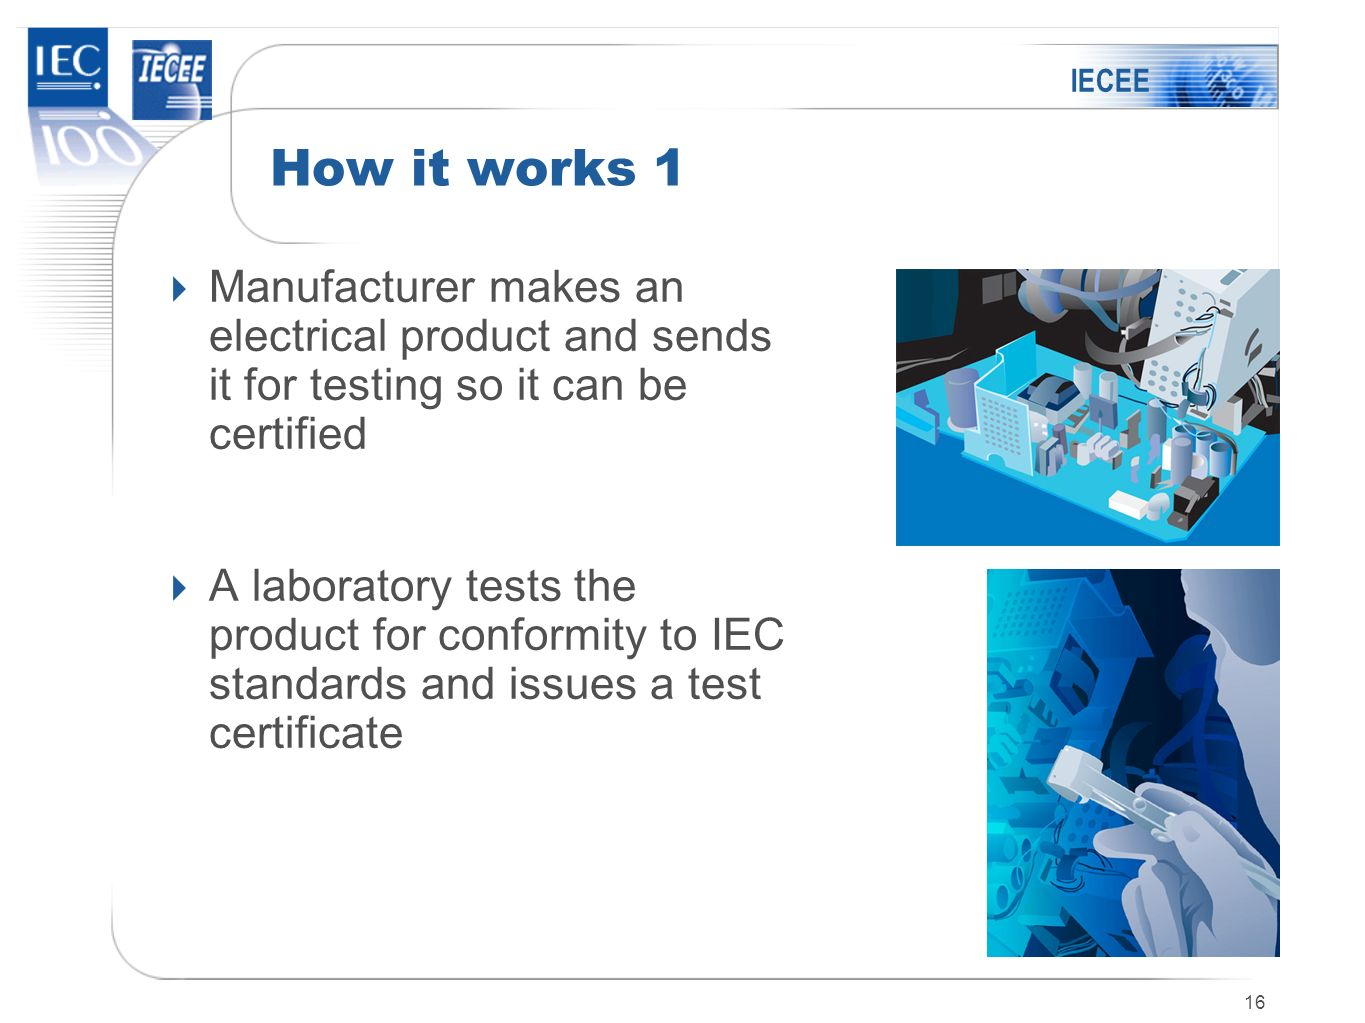 IECEE How it works 1. Manufacturer makes an electrical product and sends it for testing so it can be certified.